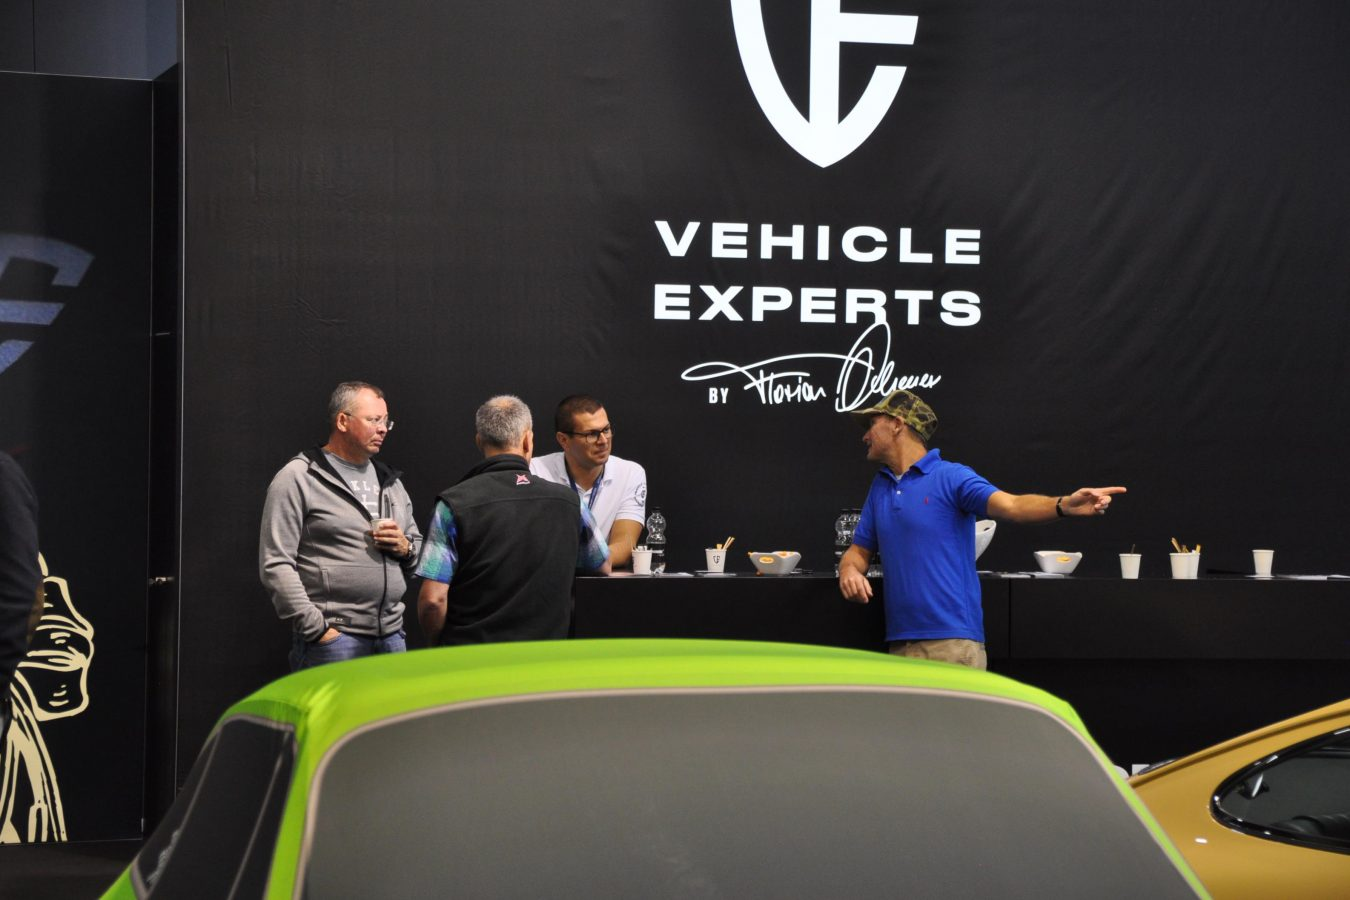 Vehicle-Experts an Classic Expo Salzburg 2019